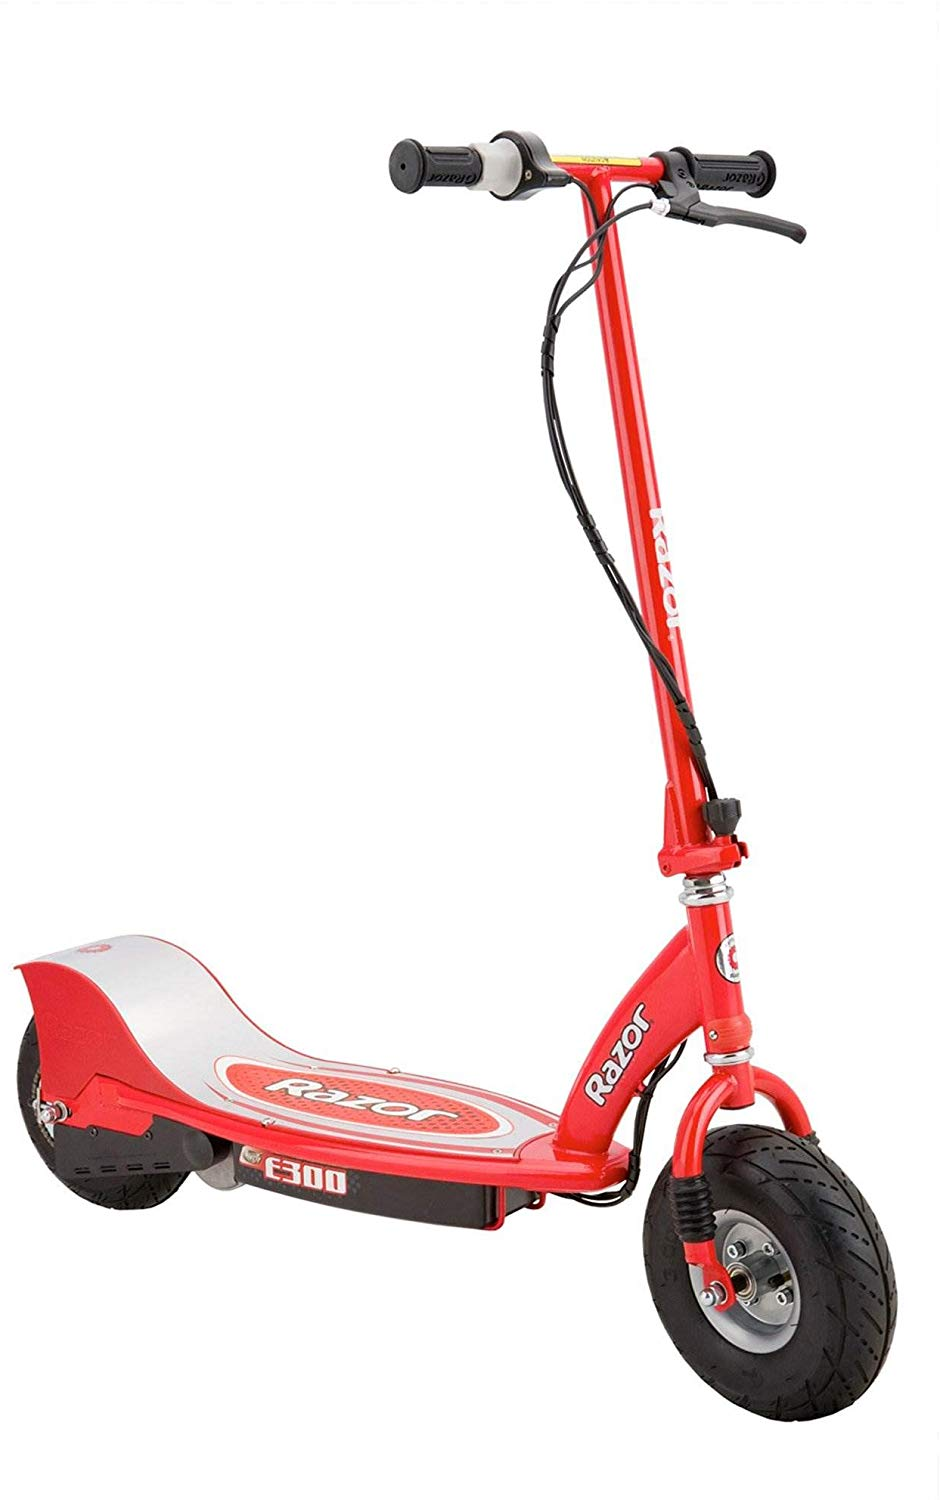 Best Electric Scooters for Commuting 2021